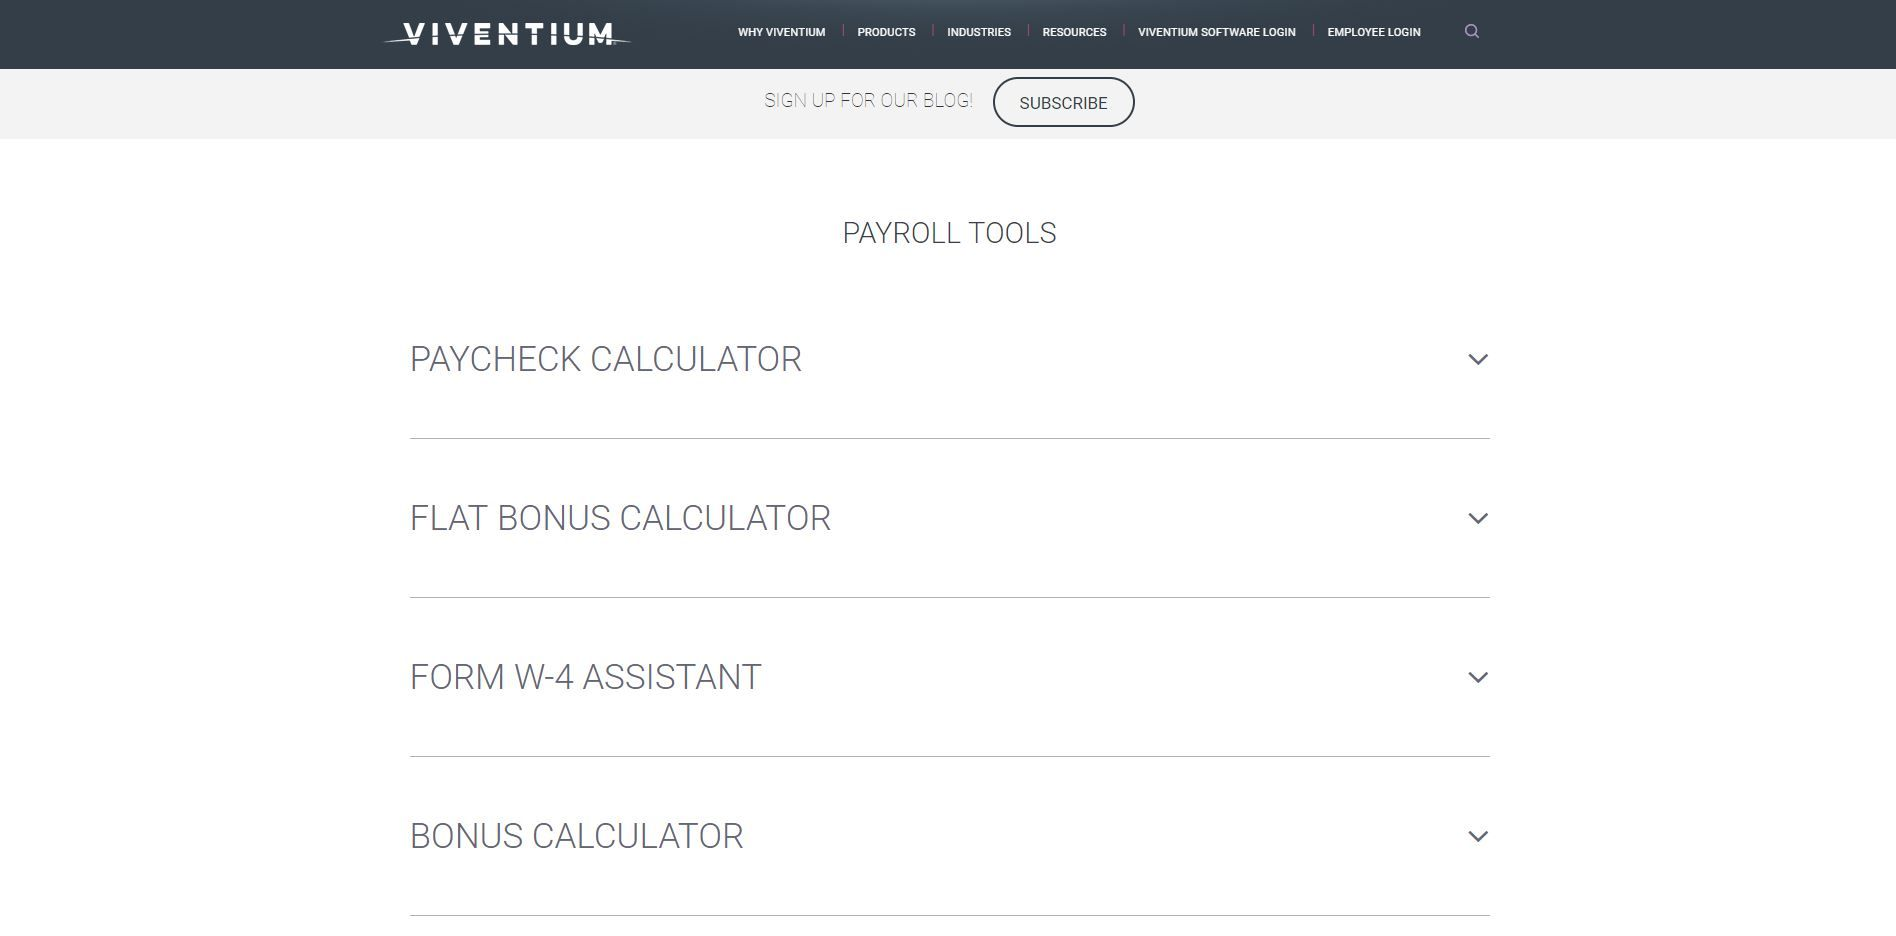 Intuitive Payroll Calculator For Hourly And Salary Employees Easily